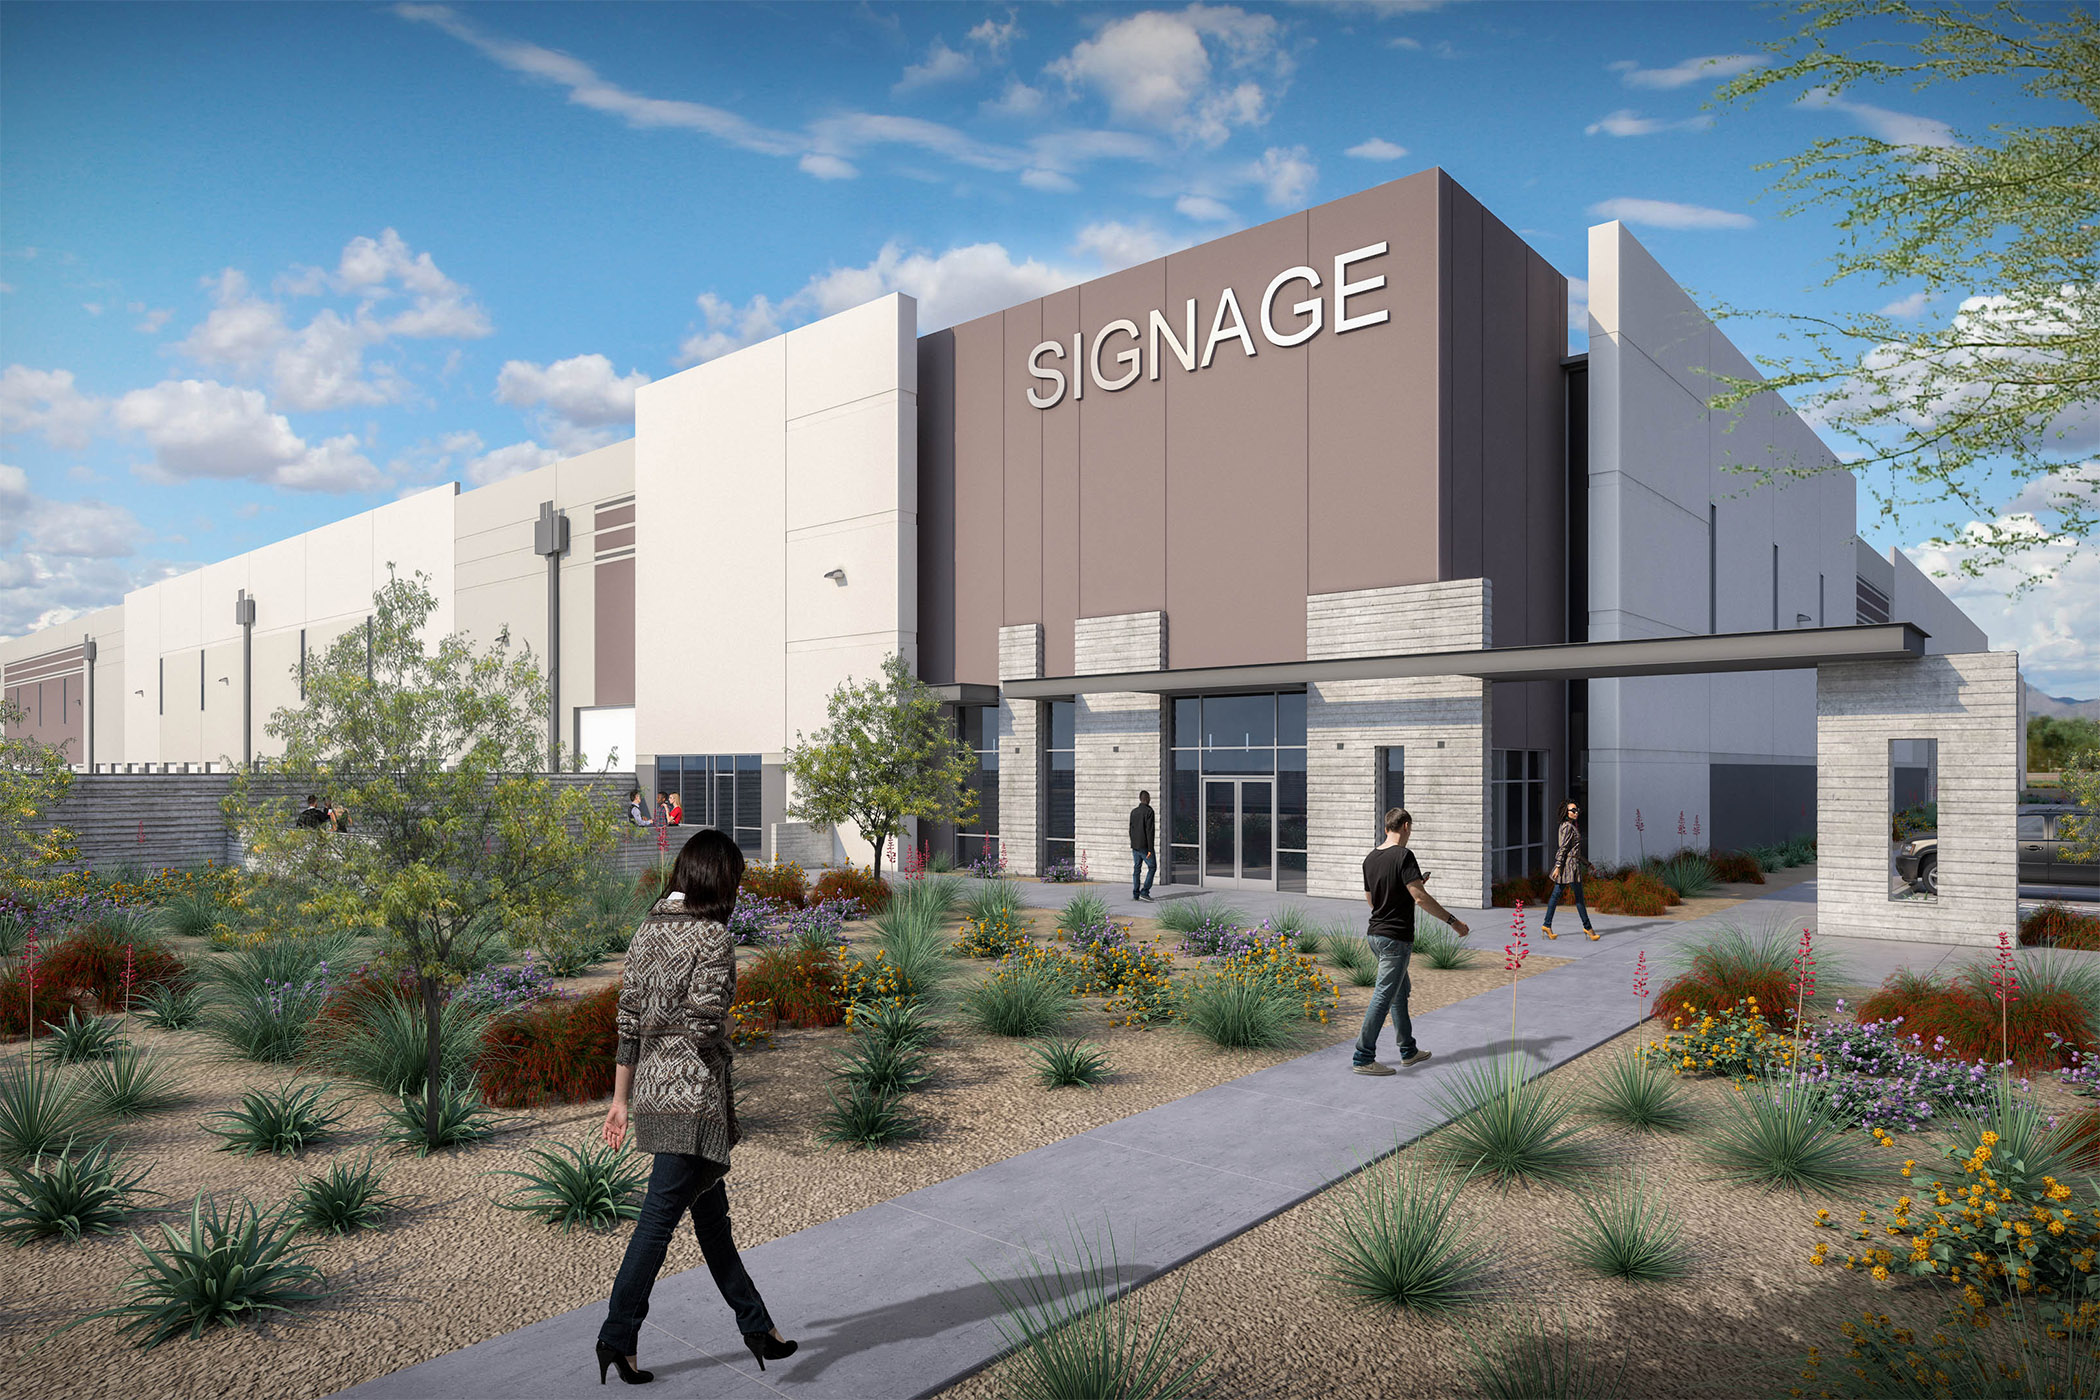 Investment firm Westcore's projects in development include a distribution center in Goodyear, Arizona. (Westcore)